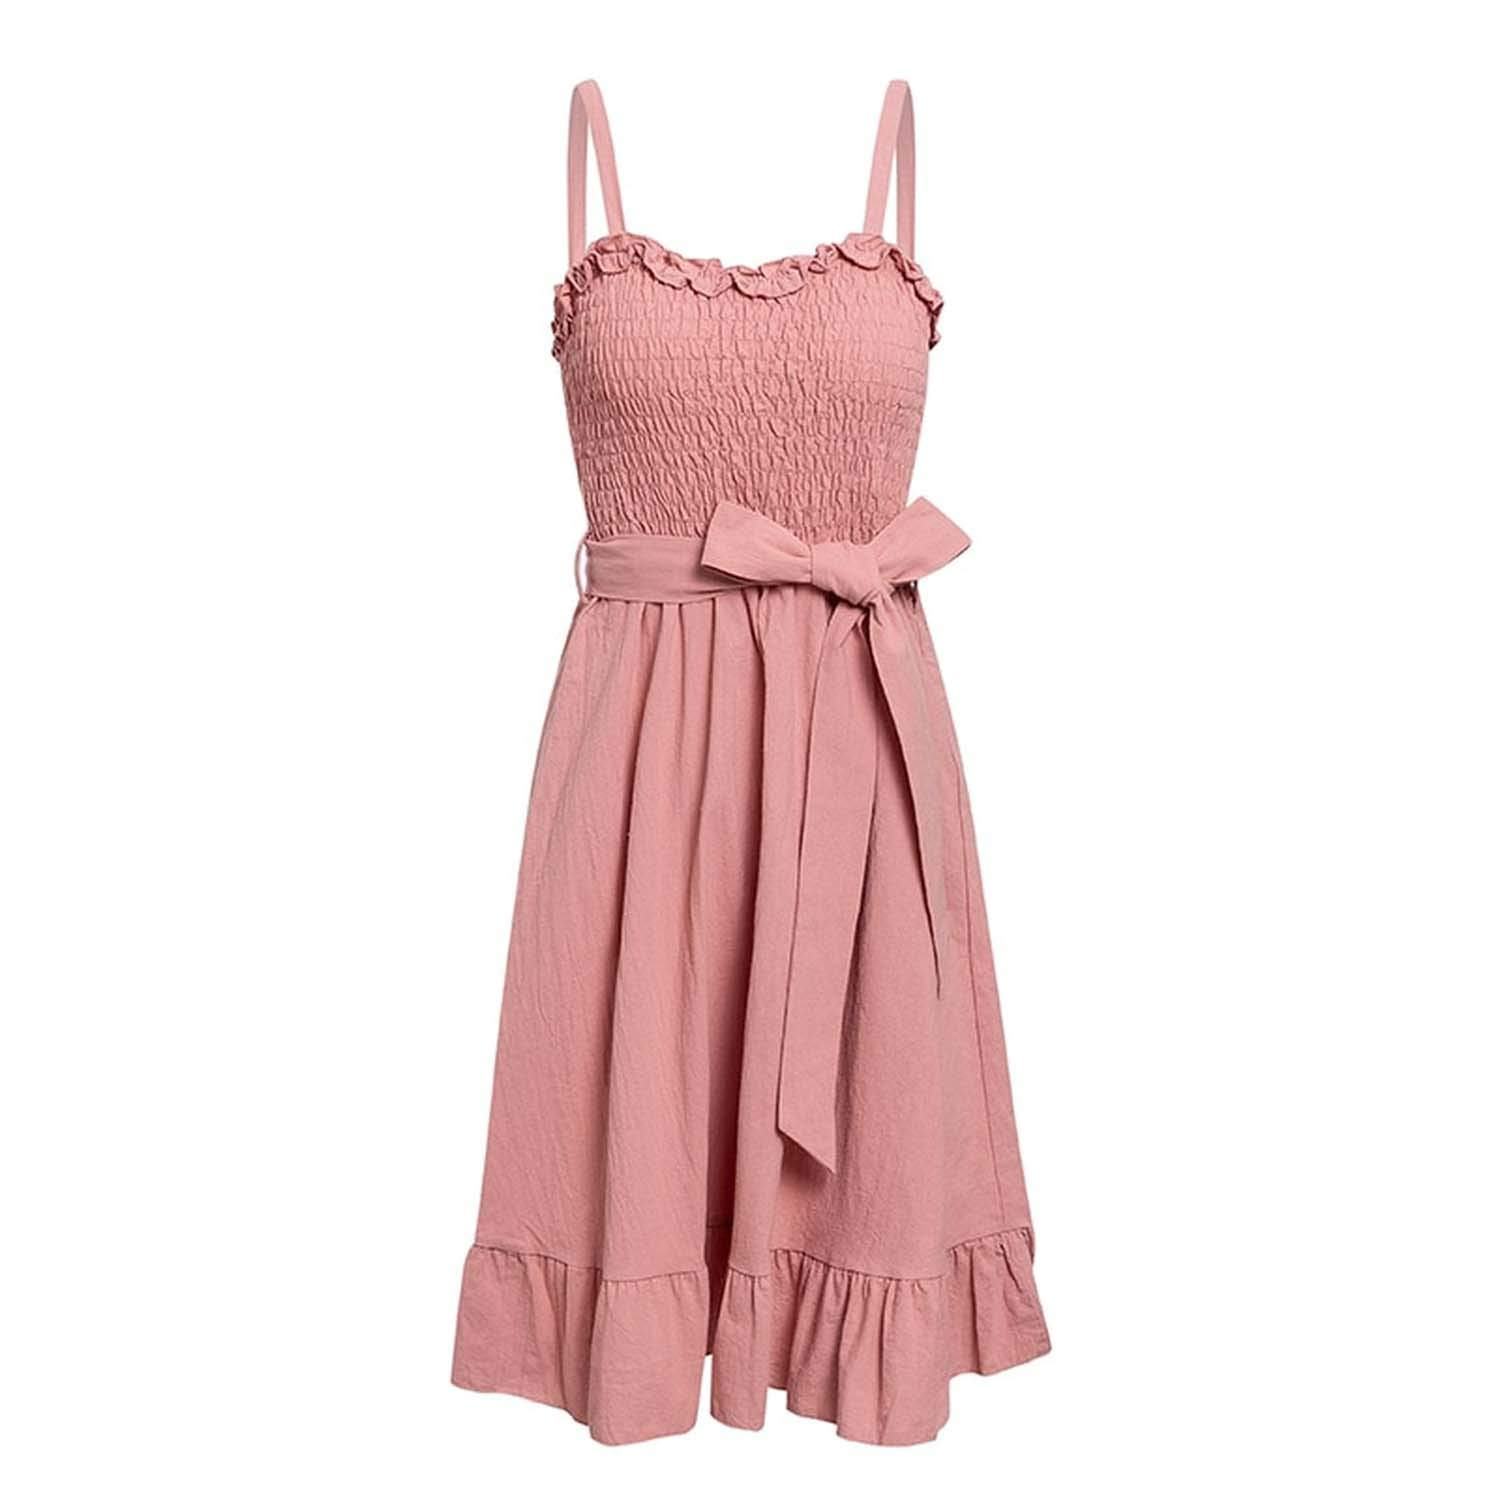 Pink Sleeveless Ruffle Elegant Dress Women Ruched Sashes Bow Cotton Summer midi Dresses Sexy Solid Female Pink